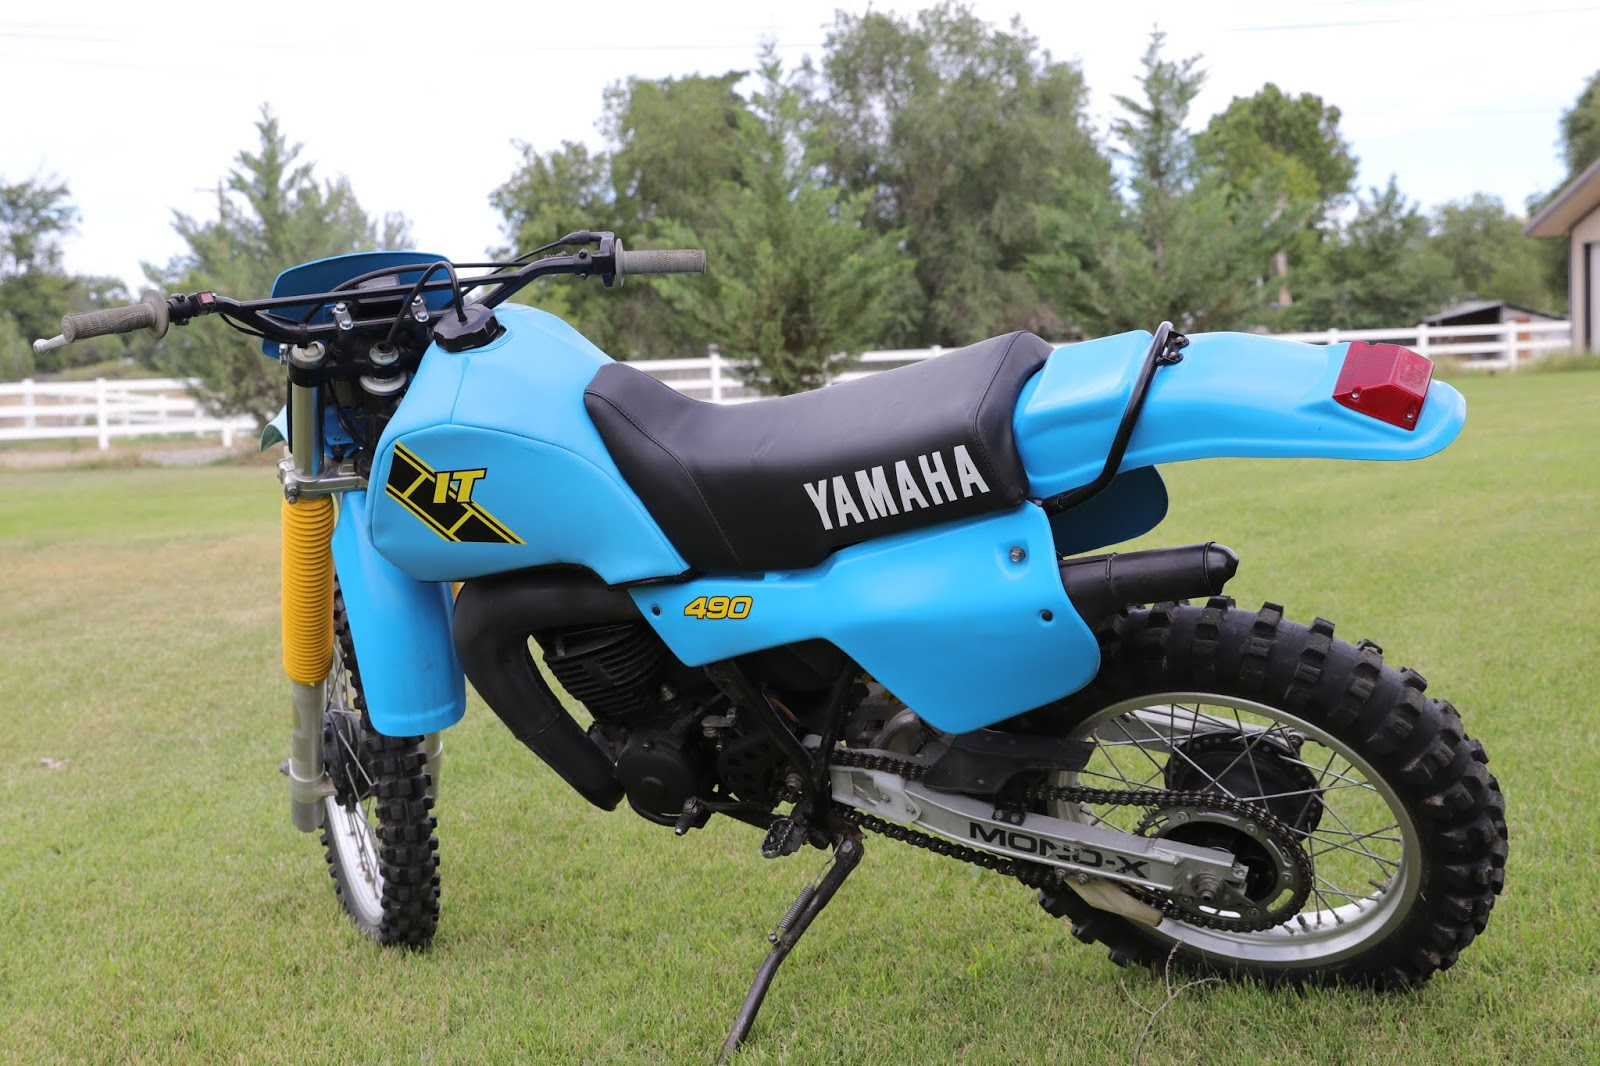 1983 Yamaha IT 490 From My Personal Collection